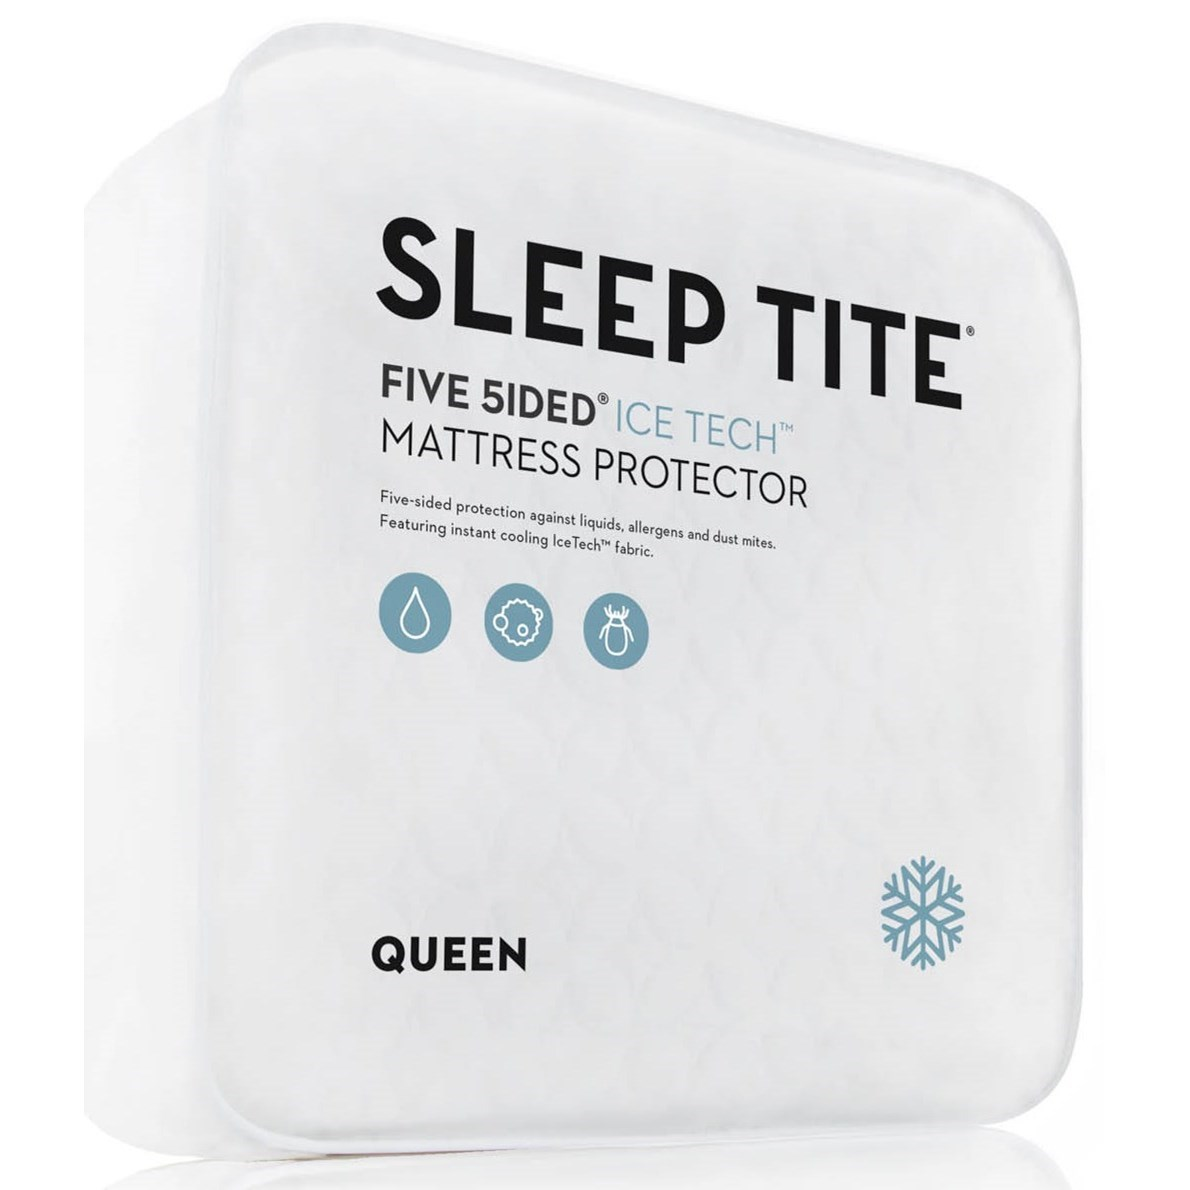 Five 5ided IceTech Sp King Five 5ided IceTech Matt Protector by Malouf at Home Furnishings Direct